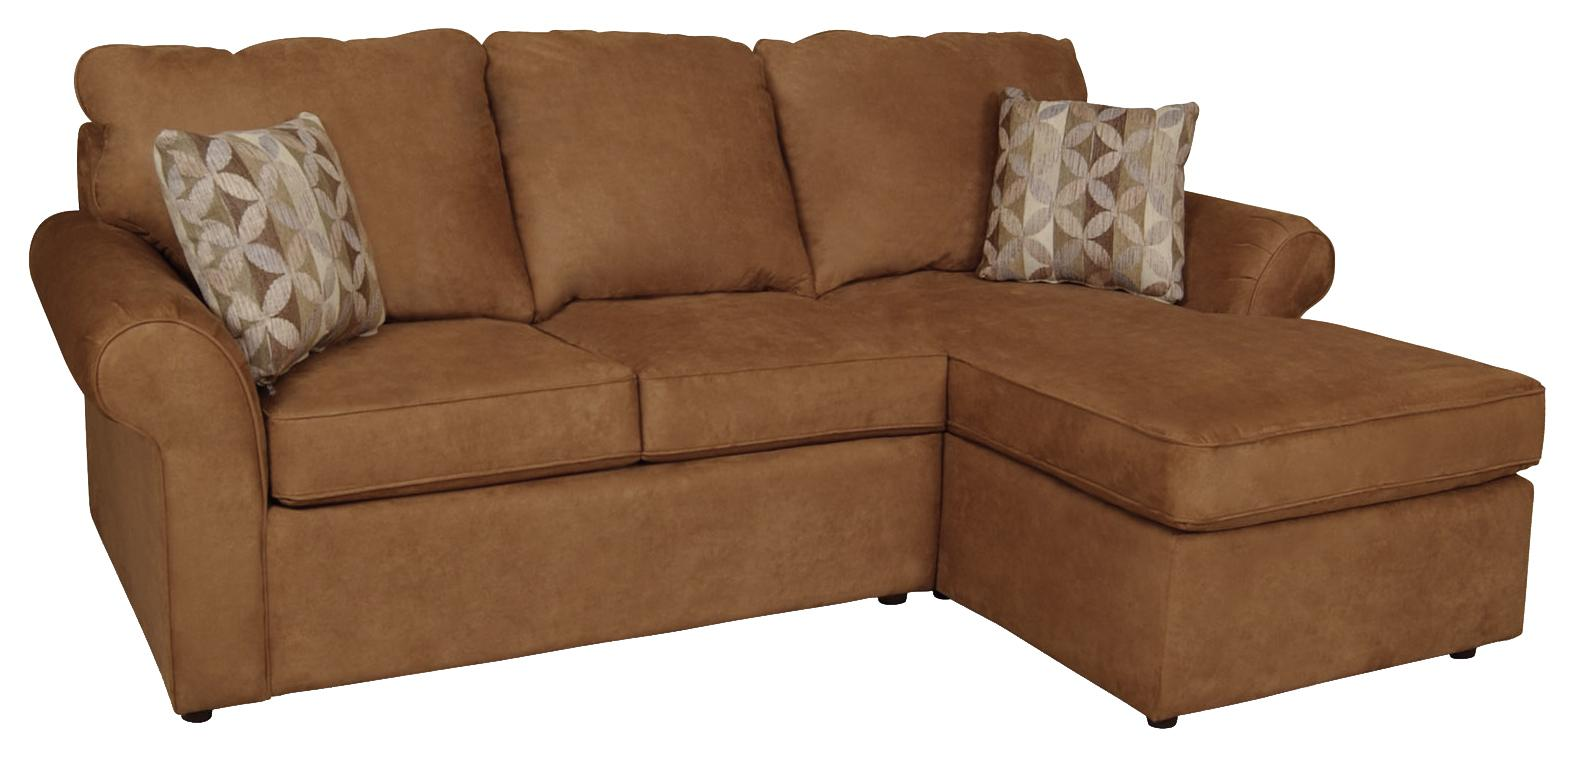 3 Seat (right side) Chaise Sofa